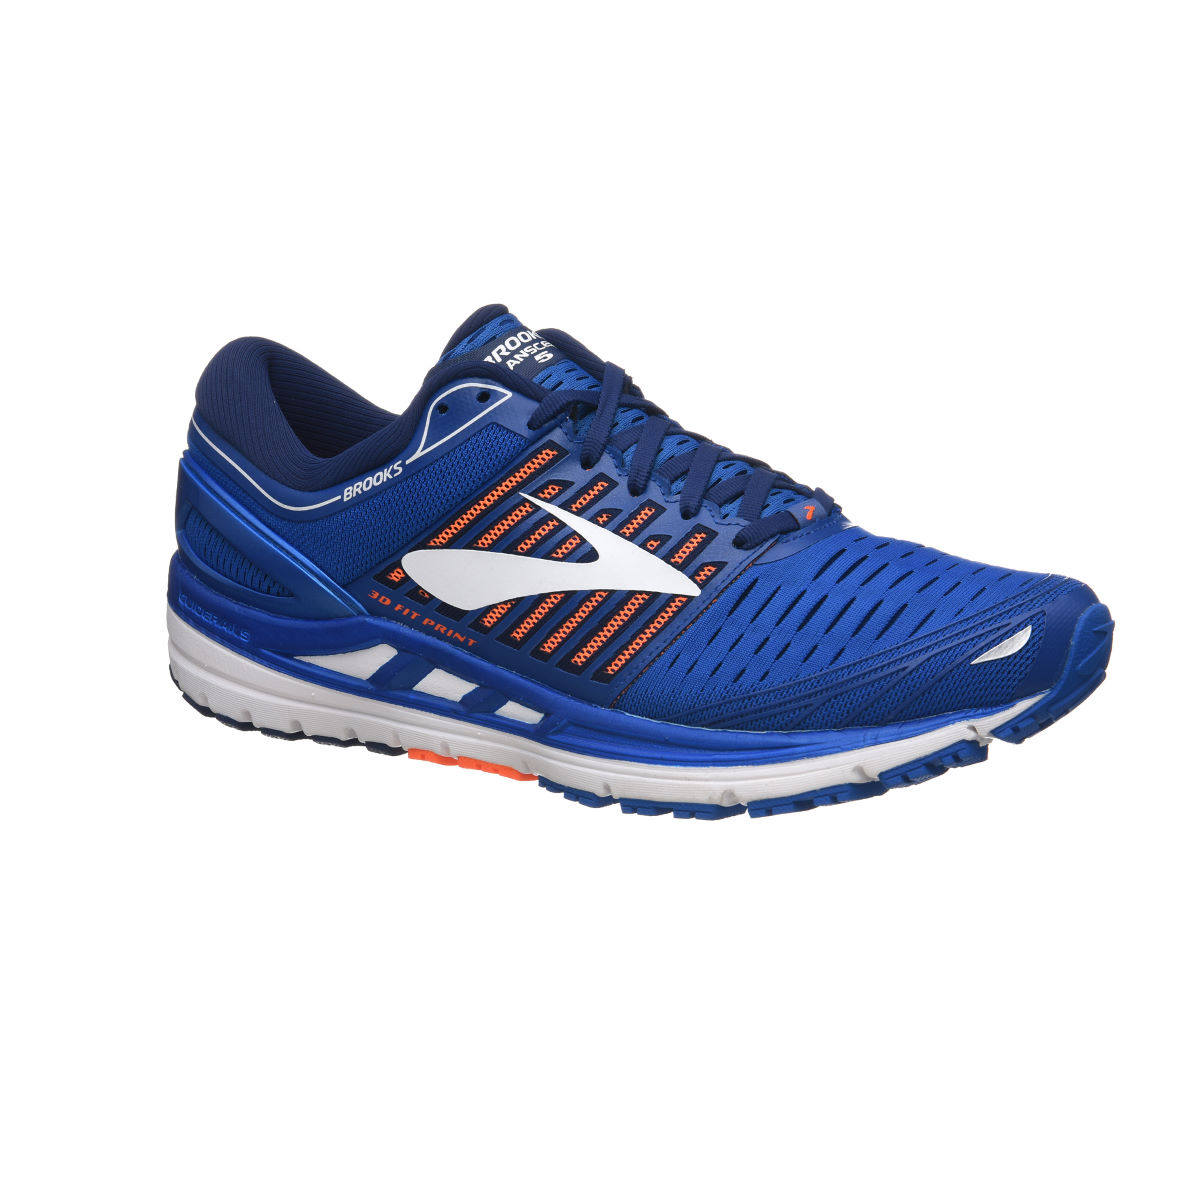 Brooks Transcend 5 Shoes - Zapatillas de running